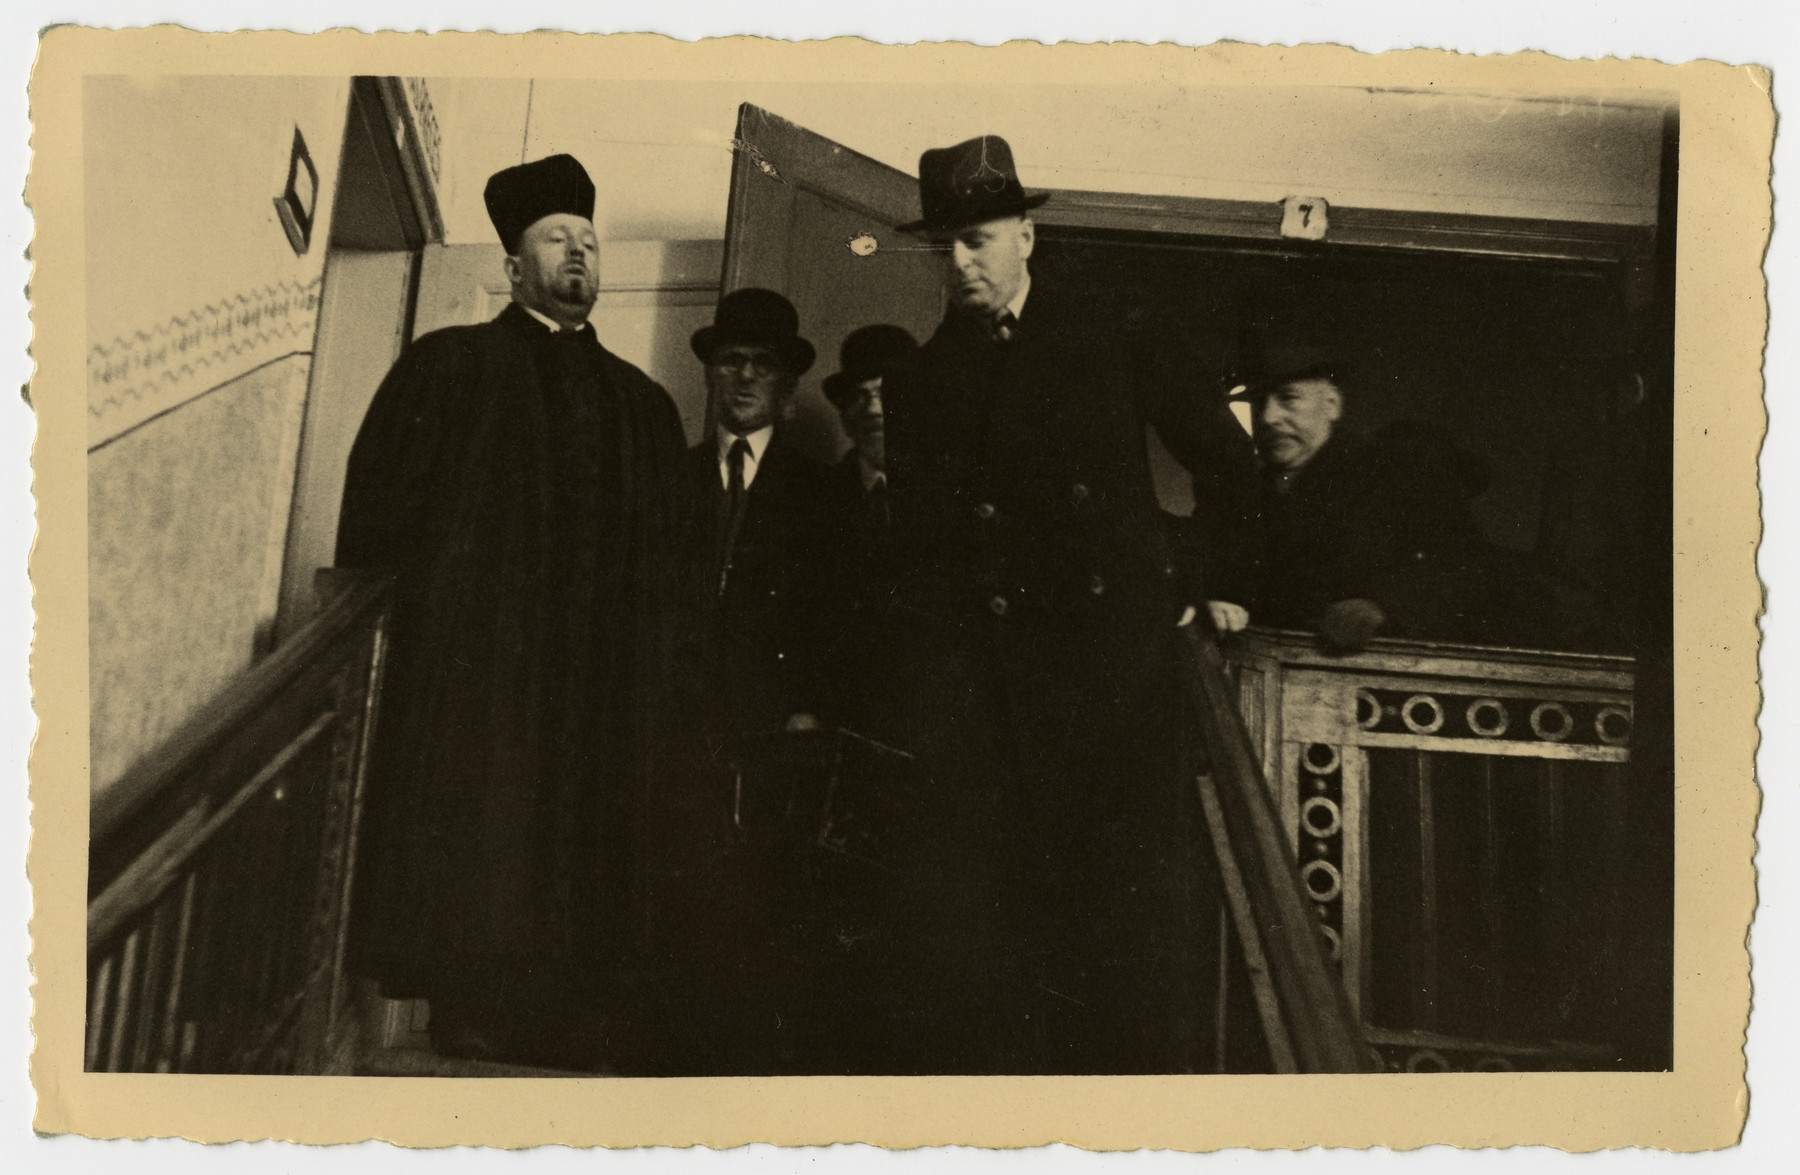 A cantor leads a porcession in prayer as the body of Freida Albin is carried down the stairs.  Pictured in the front is  the husband of Rosa Preiss, and Mr. Rosenthal is in the back.